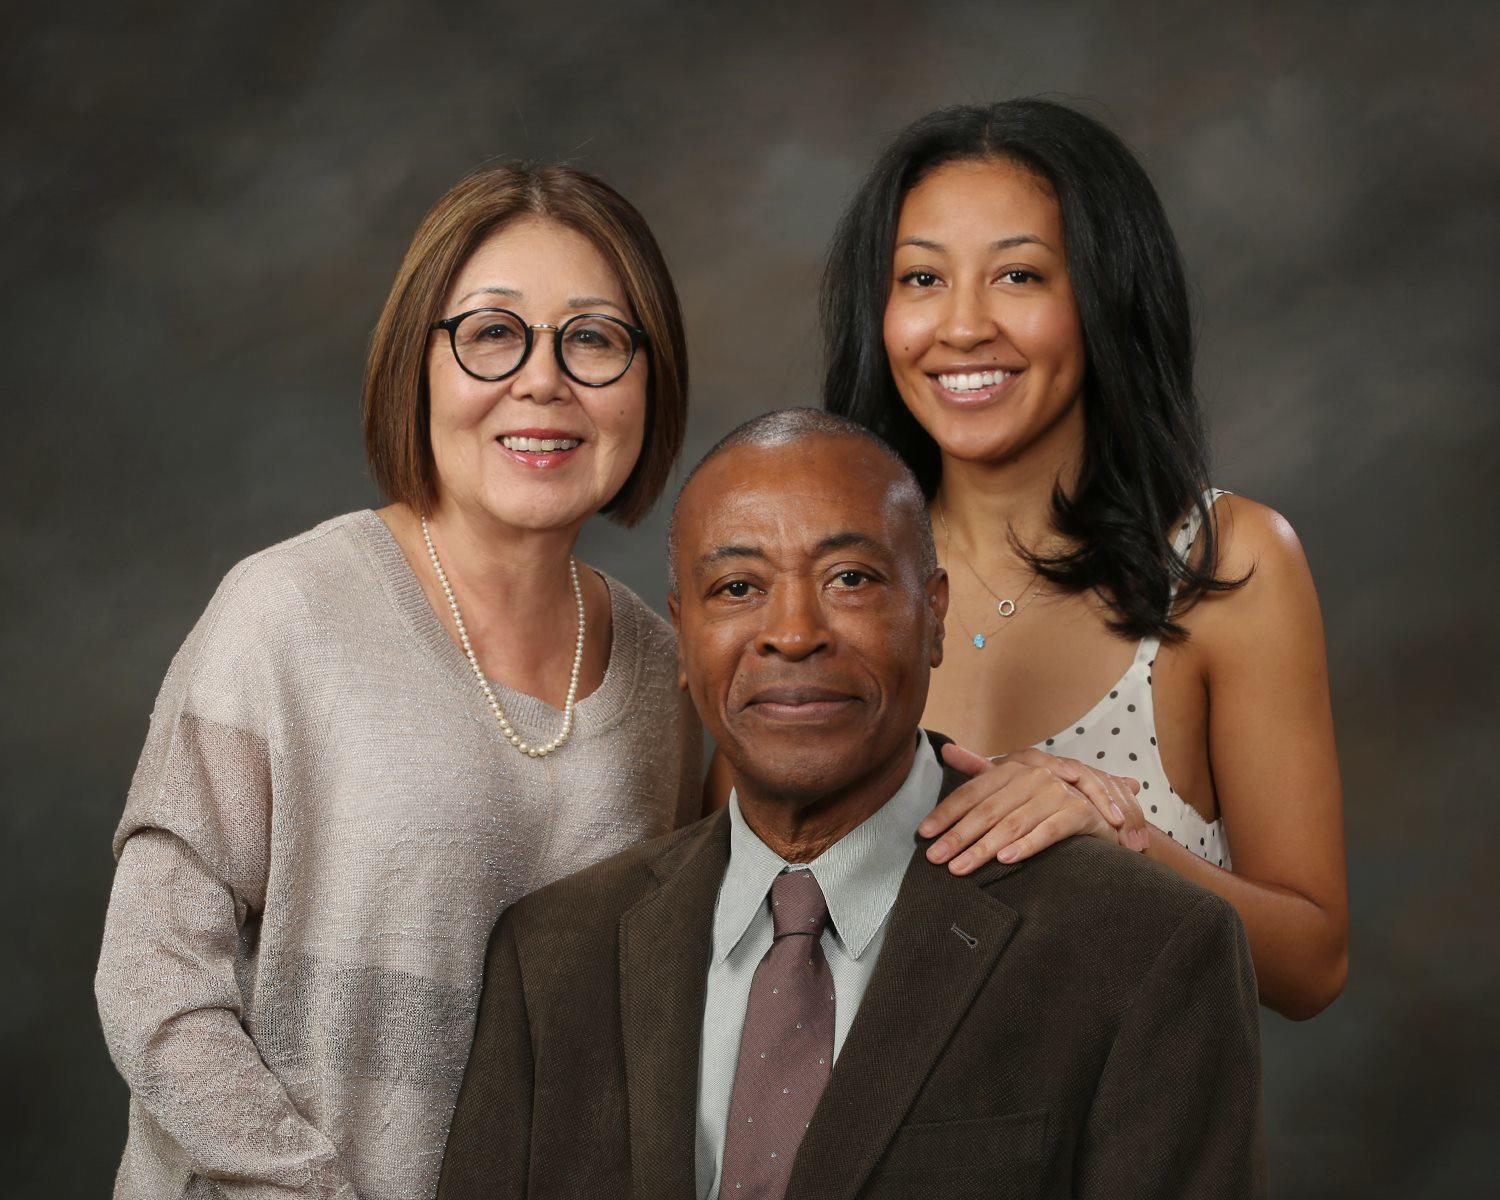 Janet Mitsui Brown with her husband, Roger Aaron Brown, and their daughter, Tani Erin Mitsui Brown.